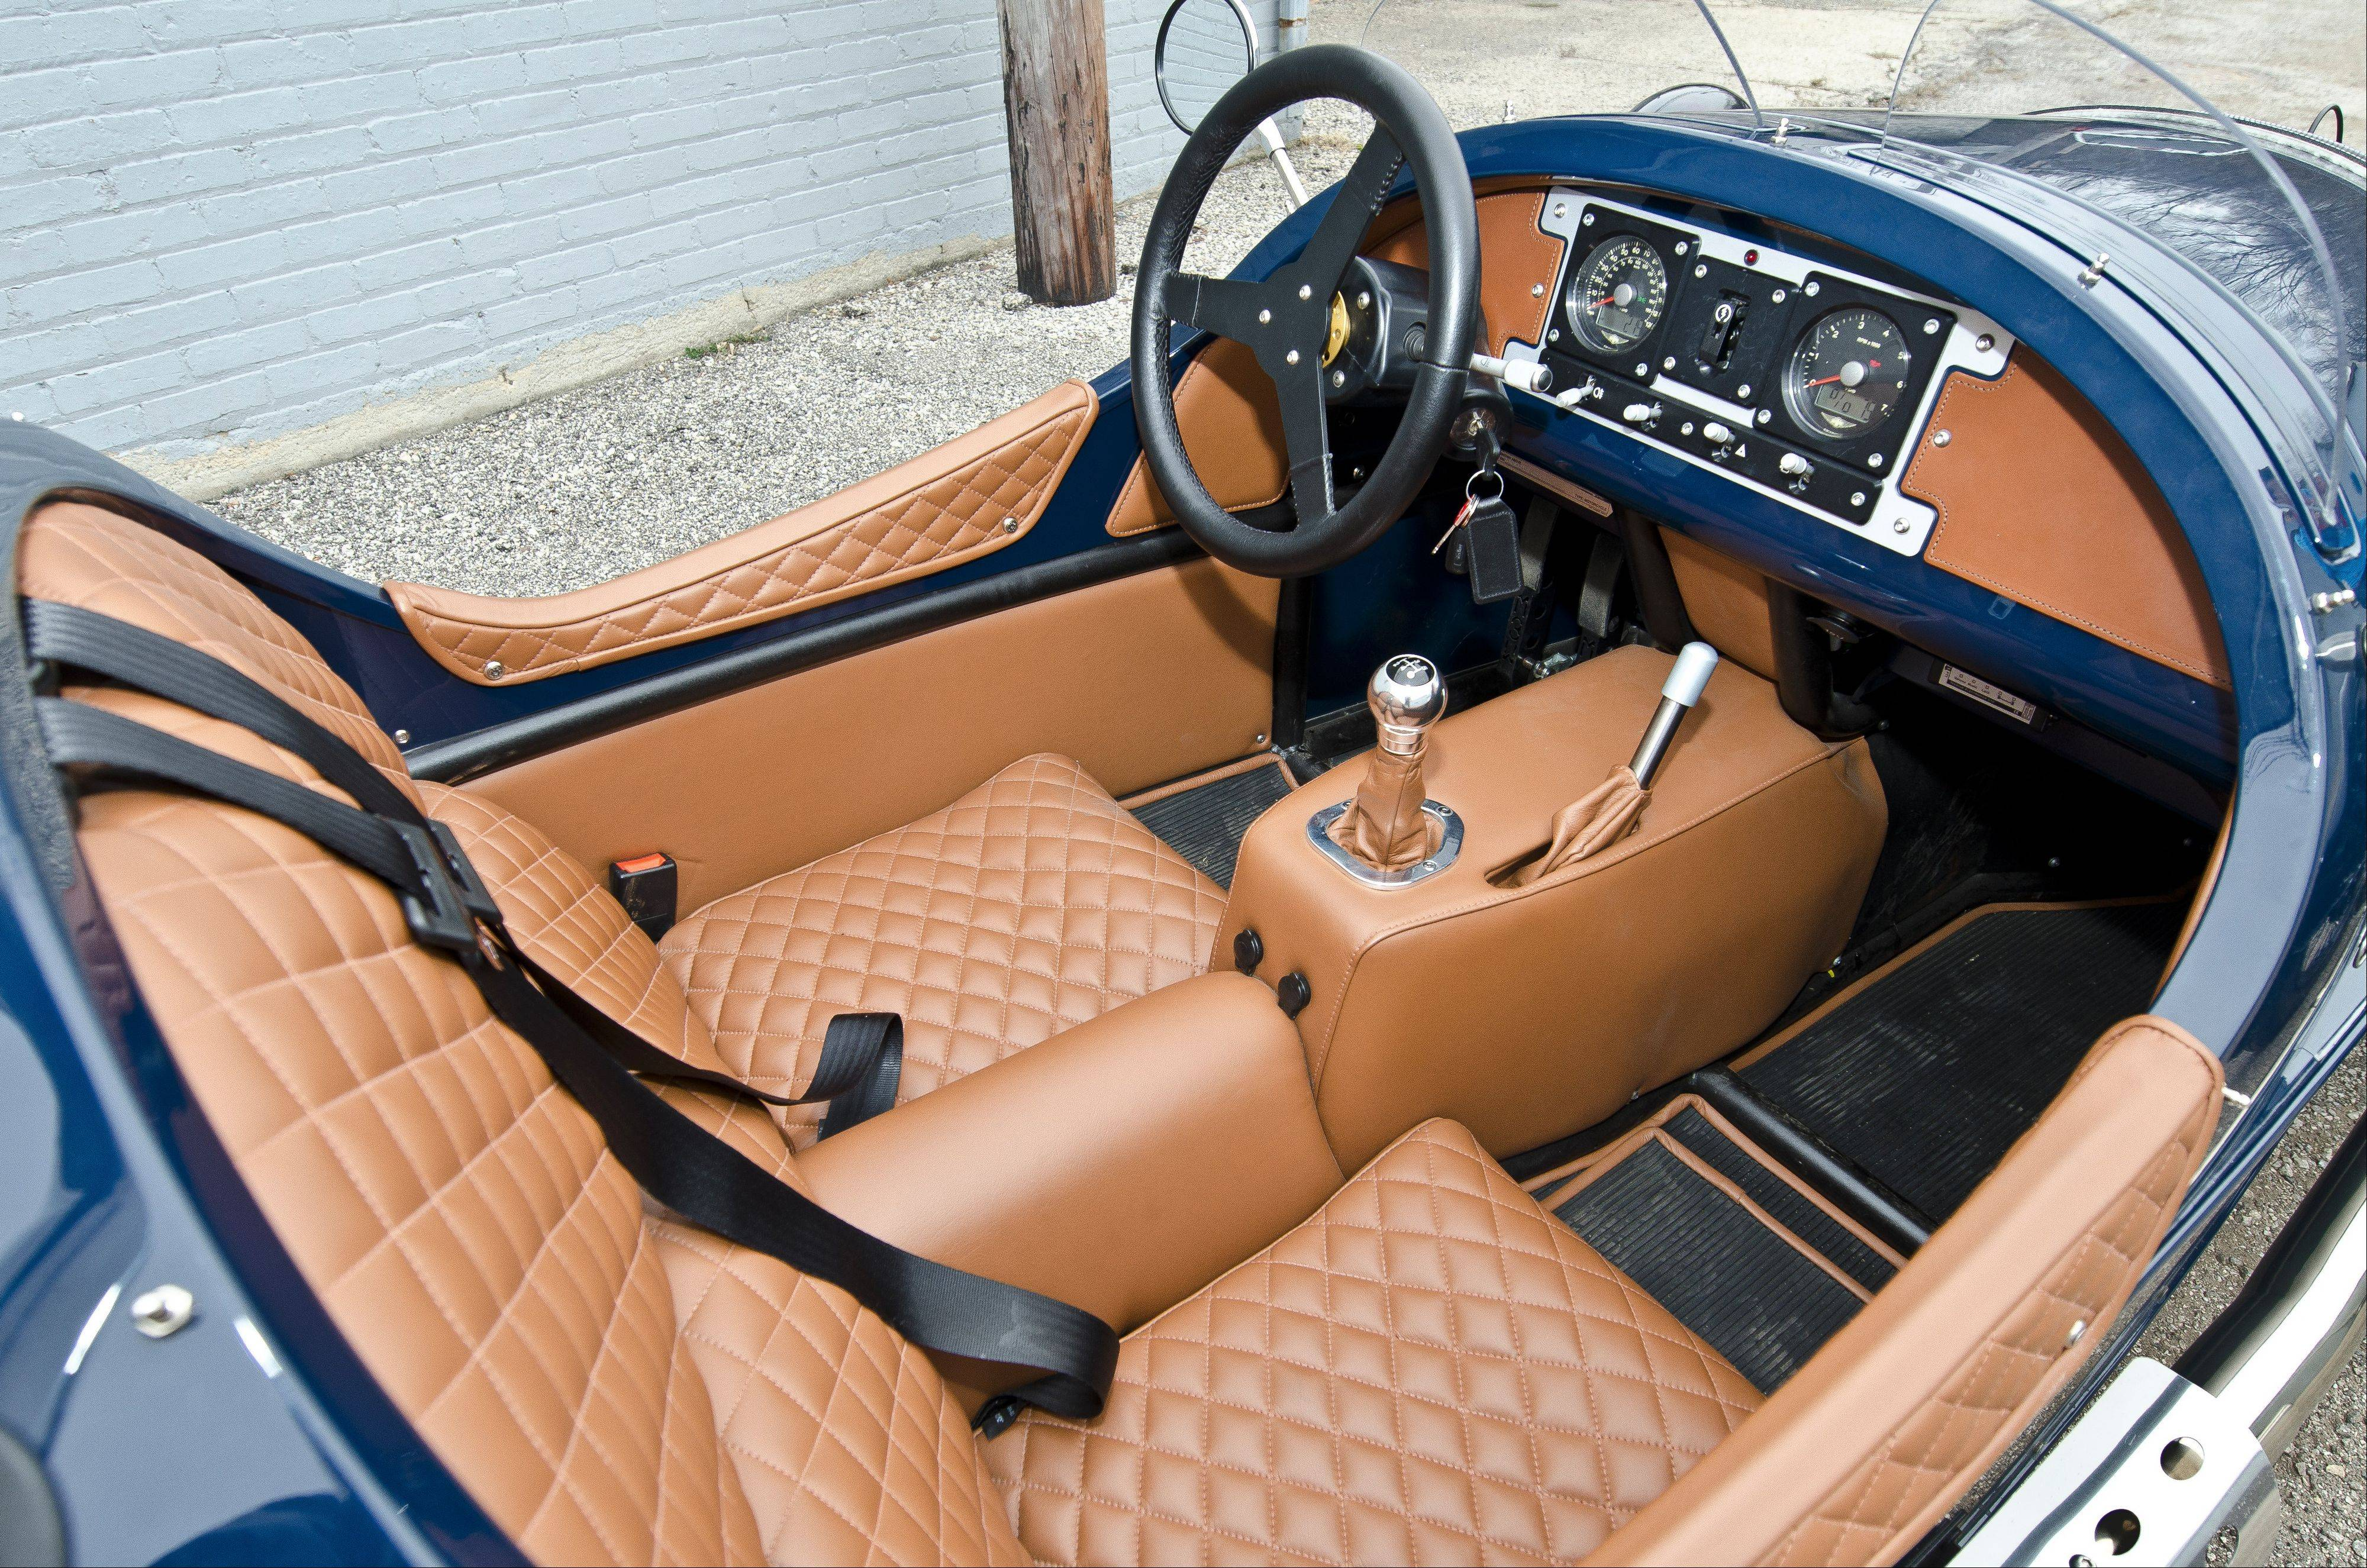 A comfortable, luxurious leather cabin is found inside the vehicle.